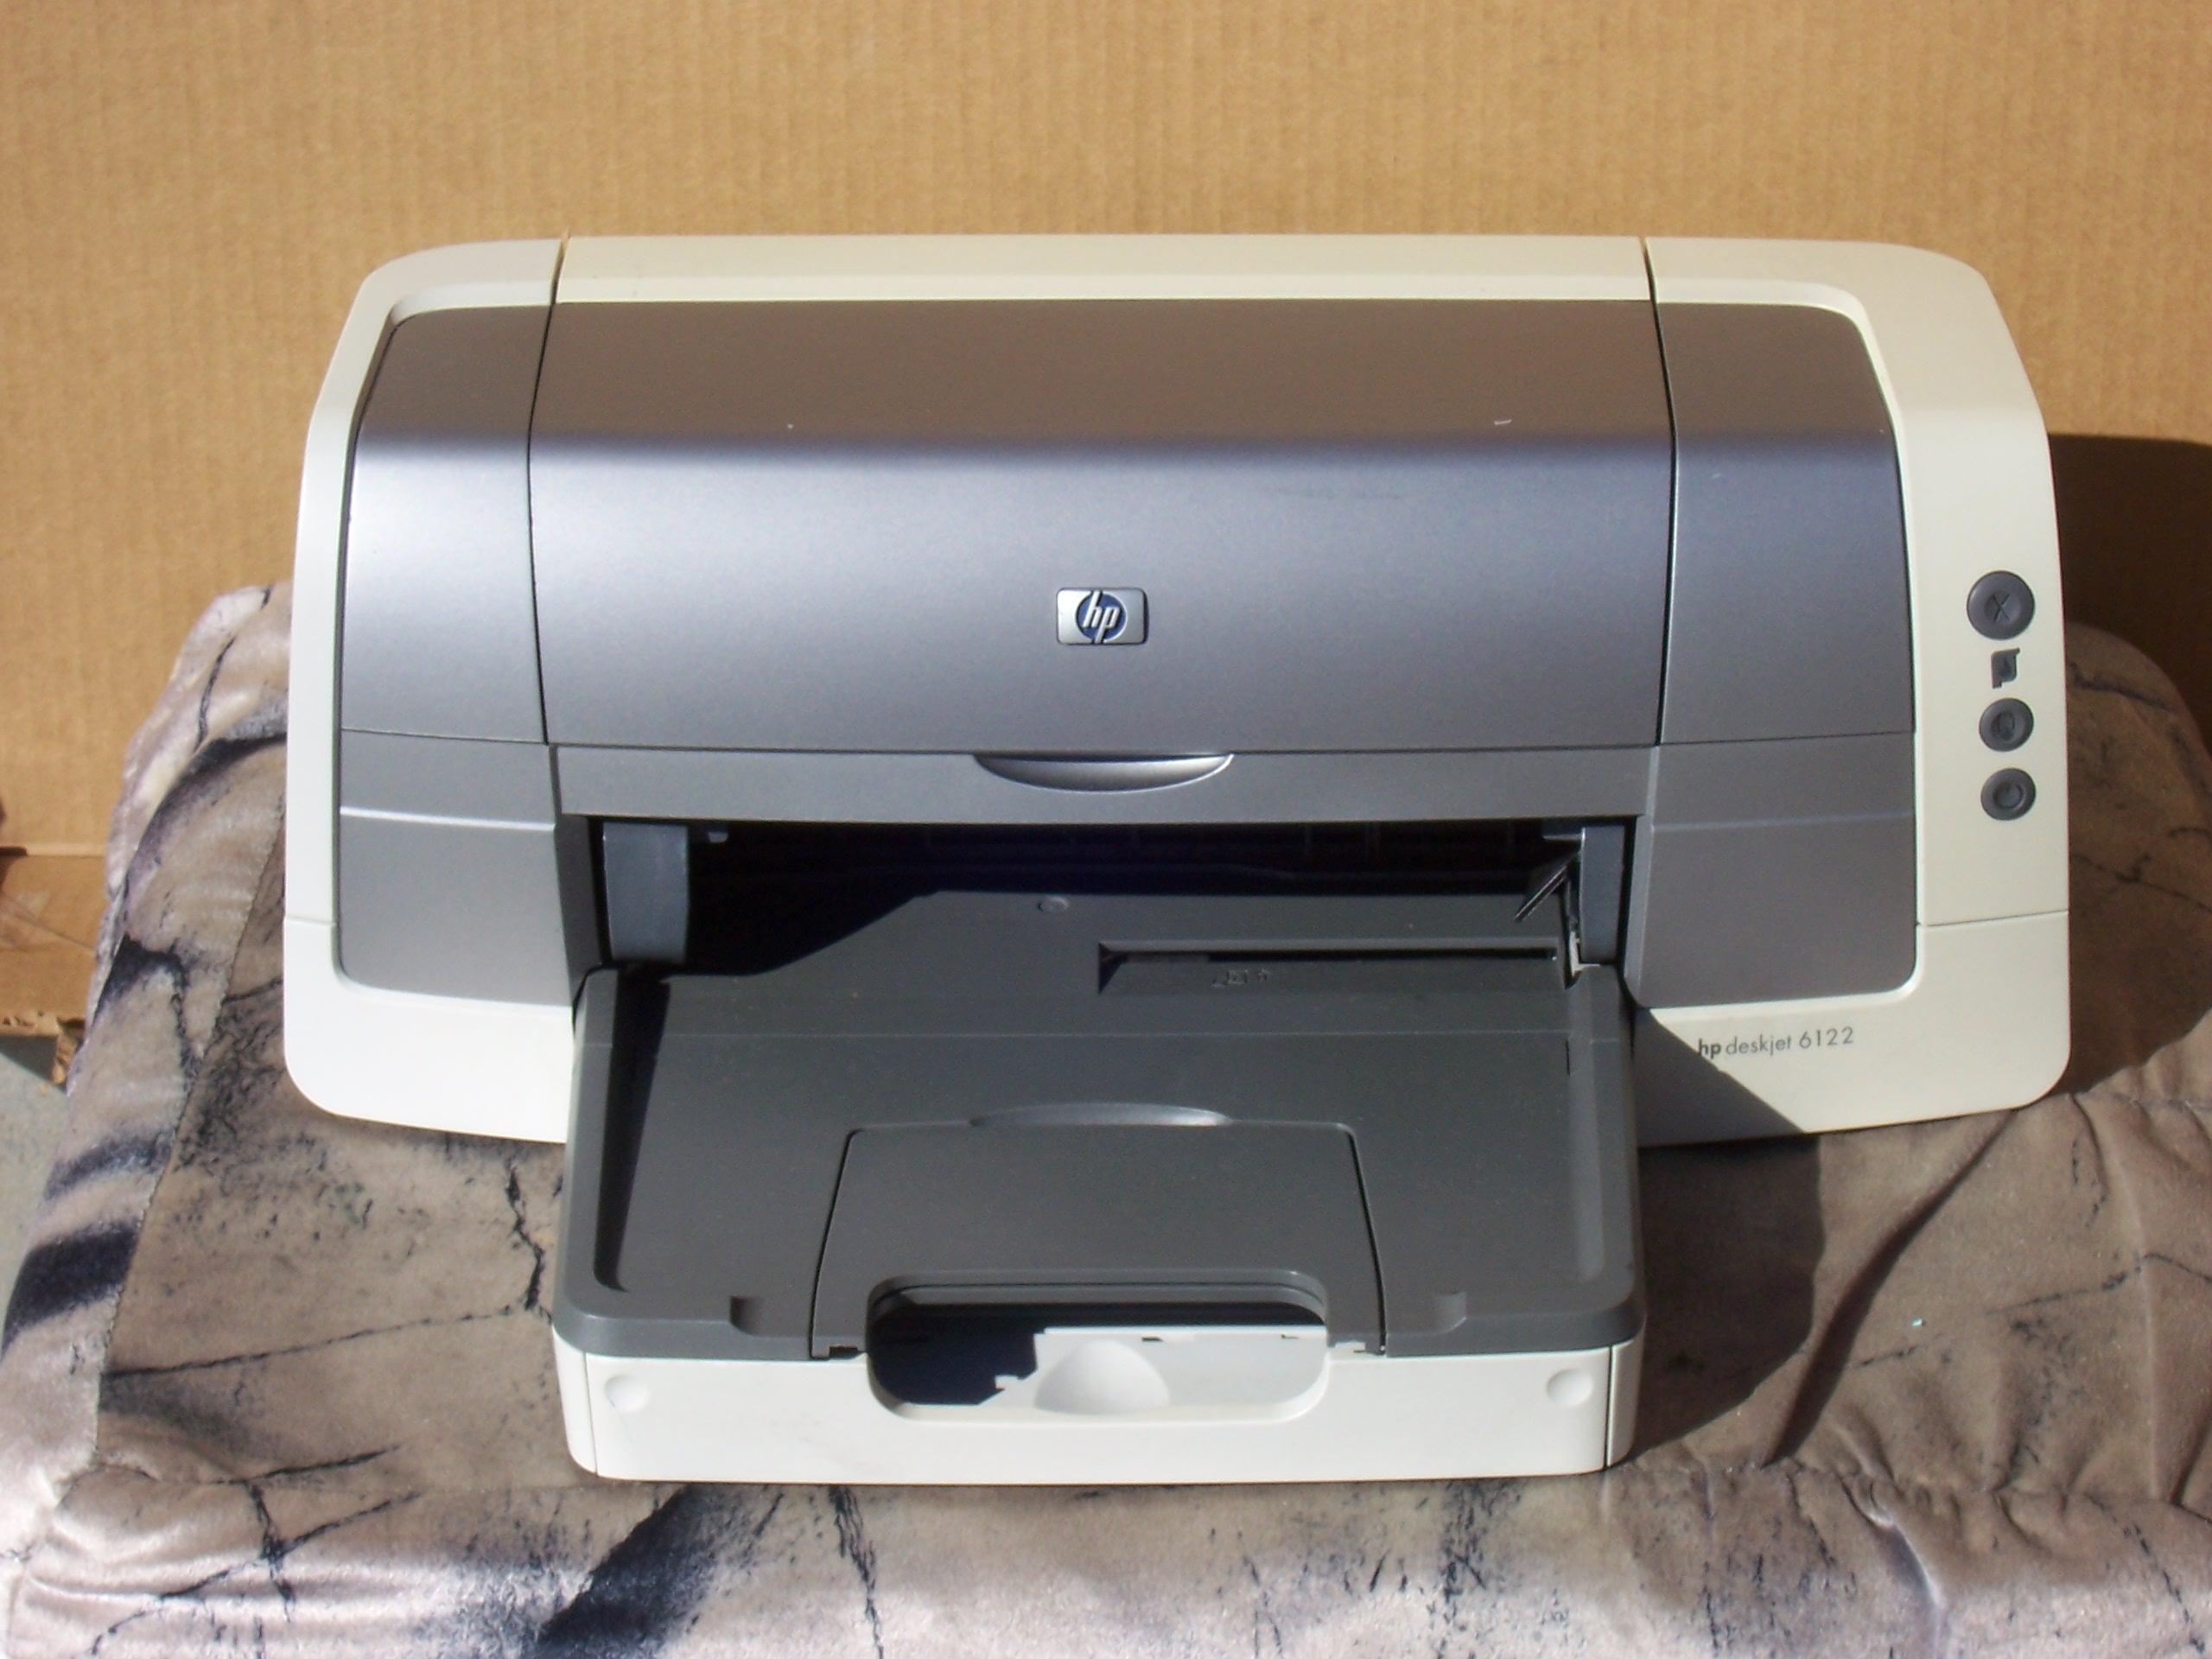 HP 6122 PRINT DRIVERS FOR WINDOWS 7